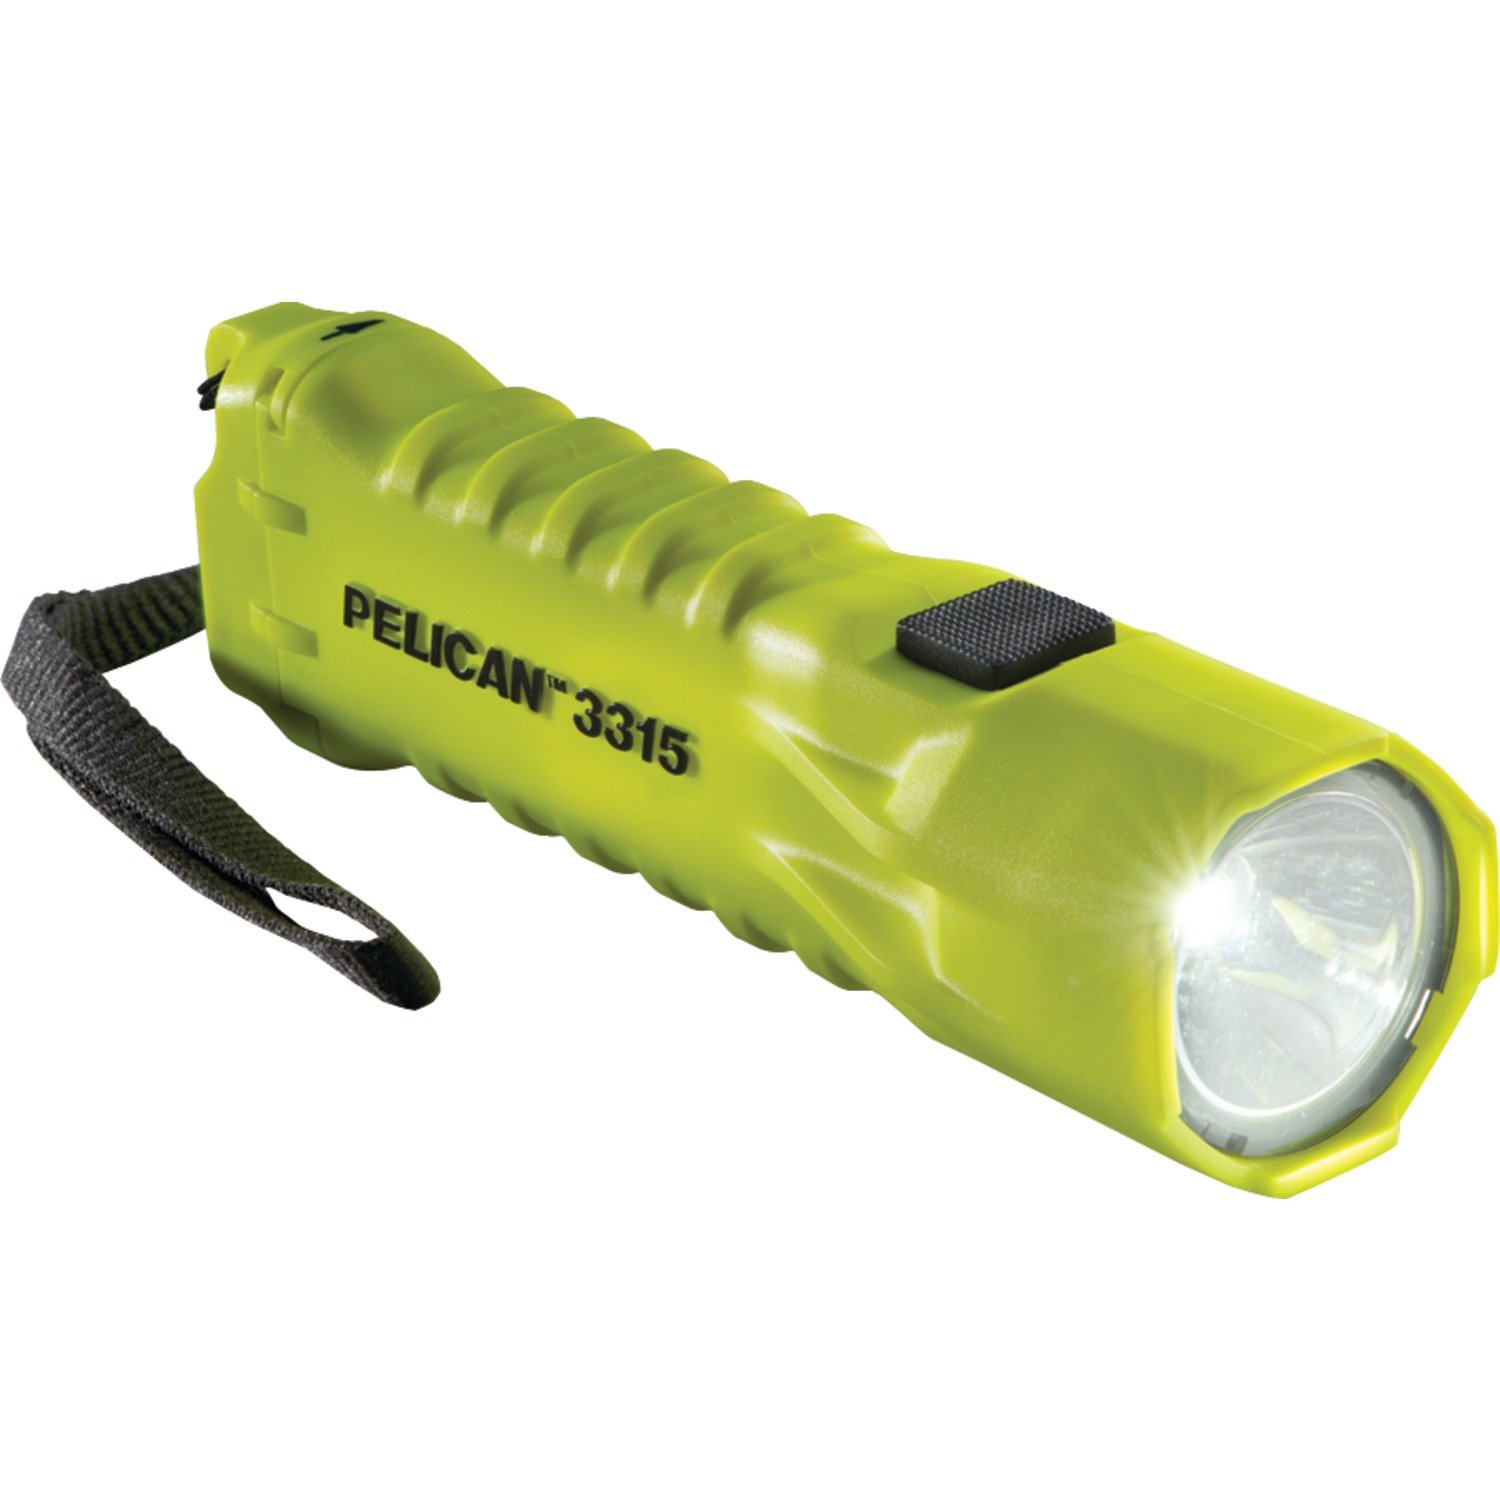 Pelican 033150-0100-245 Compact High Performance 113 Lumen LED Safety Approved Flashlight, Bright Yellow by Pelican (Image #1)